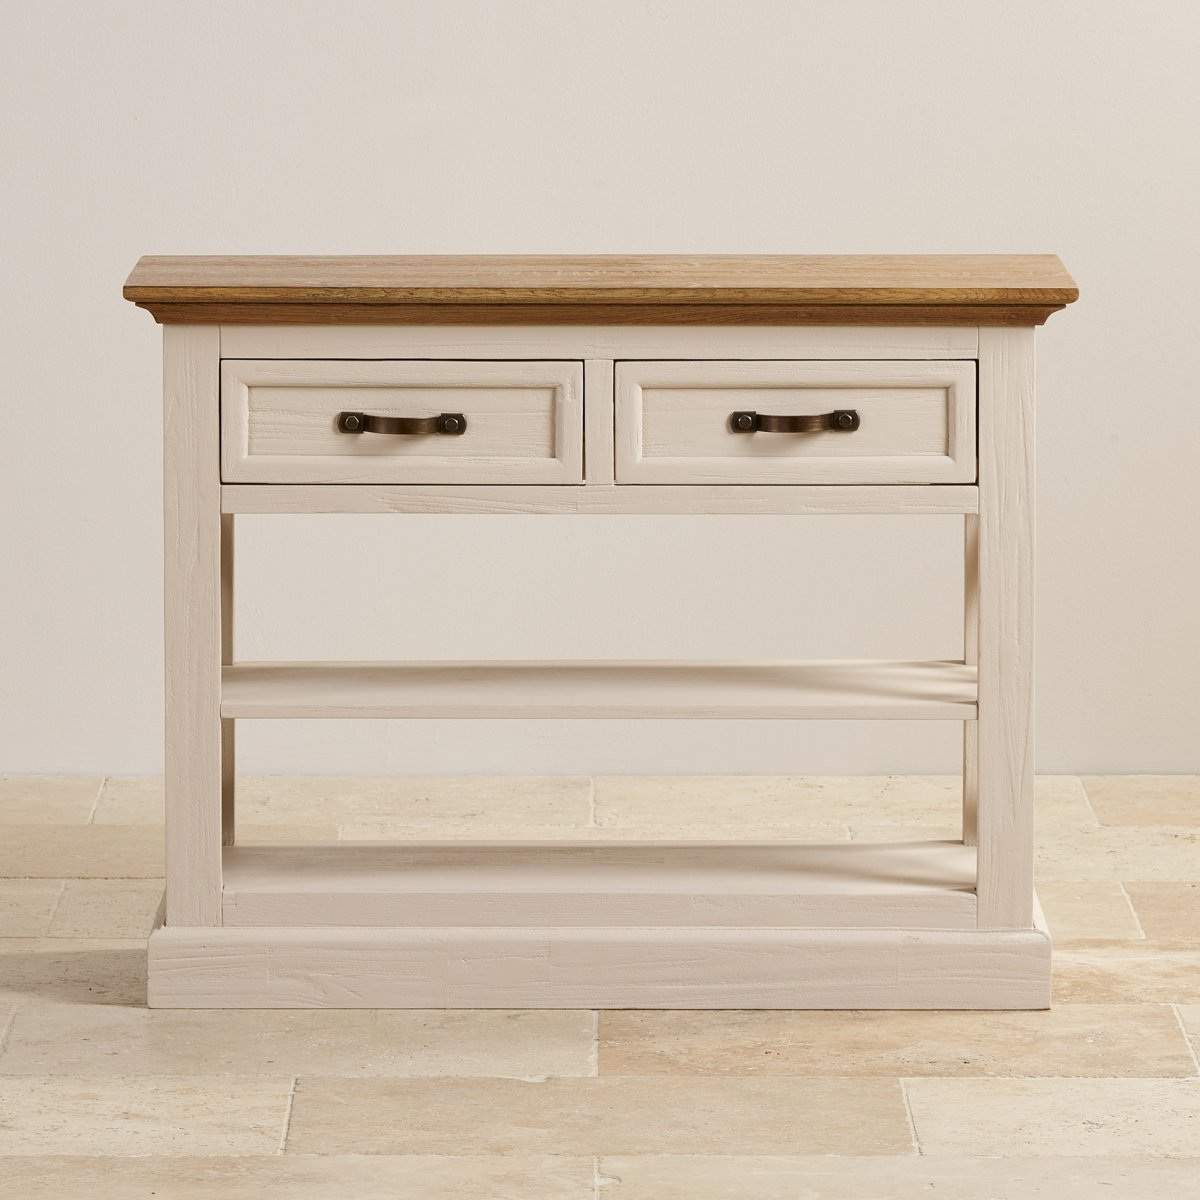 Seychelles shabby chic painted console table brushed oak top for Painted foyer tables